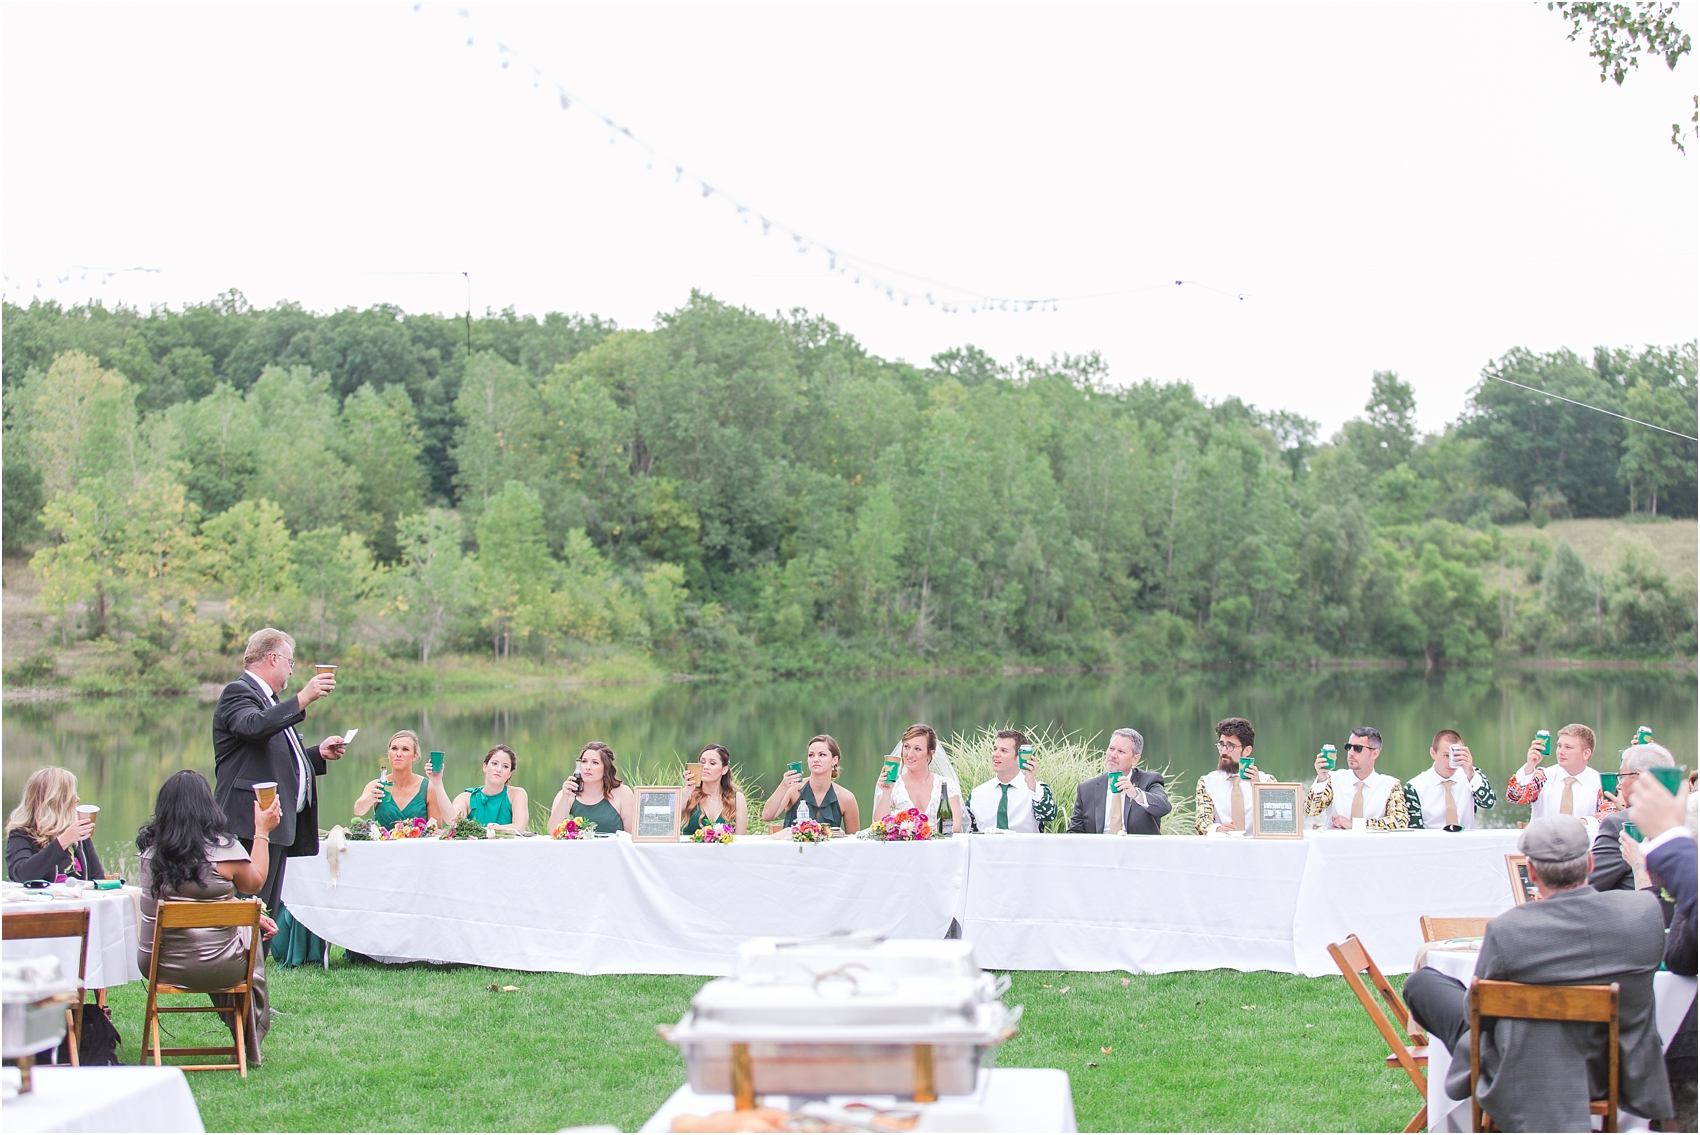 romantic-intimate-backyard-wedding-photos-at-private-estate-in-ann-arbor-mi-by-courtney-carolyn-photography_0135.jpg